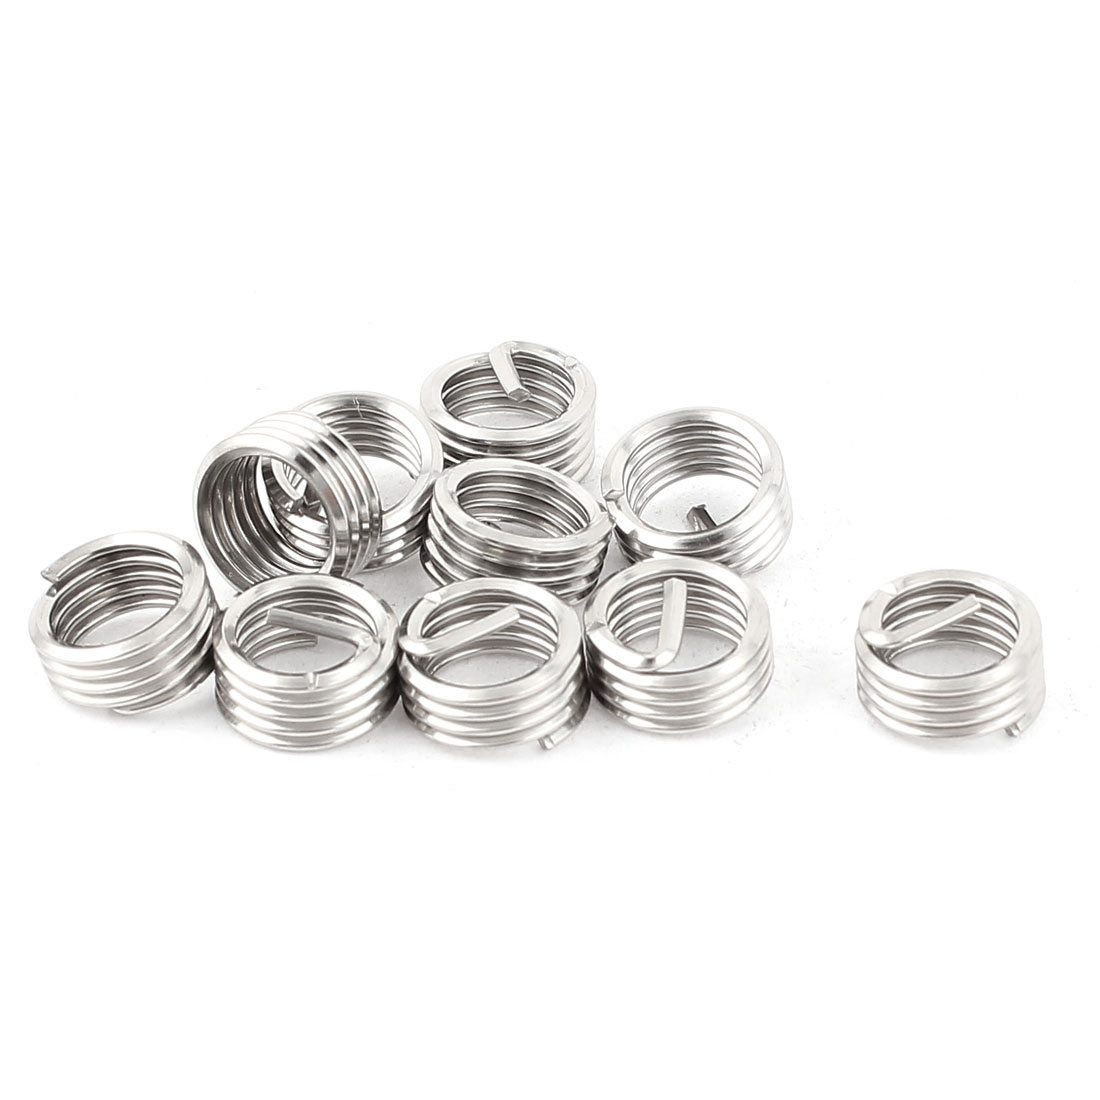 10Pcs 304 Stainless Steel Helicoil Wire Thread Repair Inserts M8 x 1.25mm x 1D